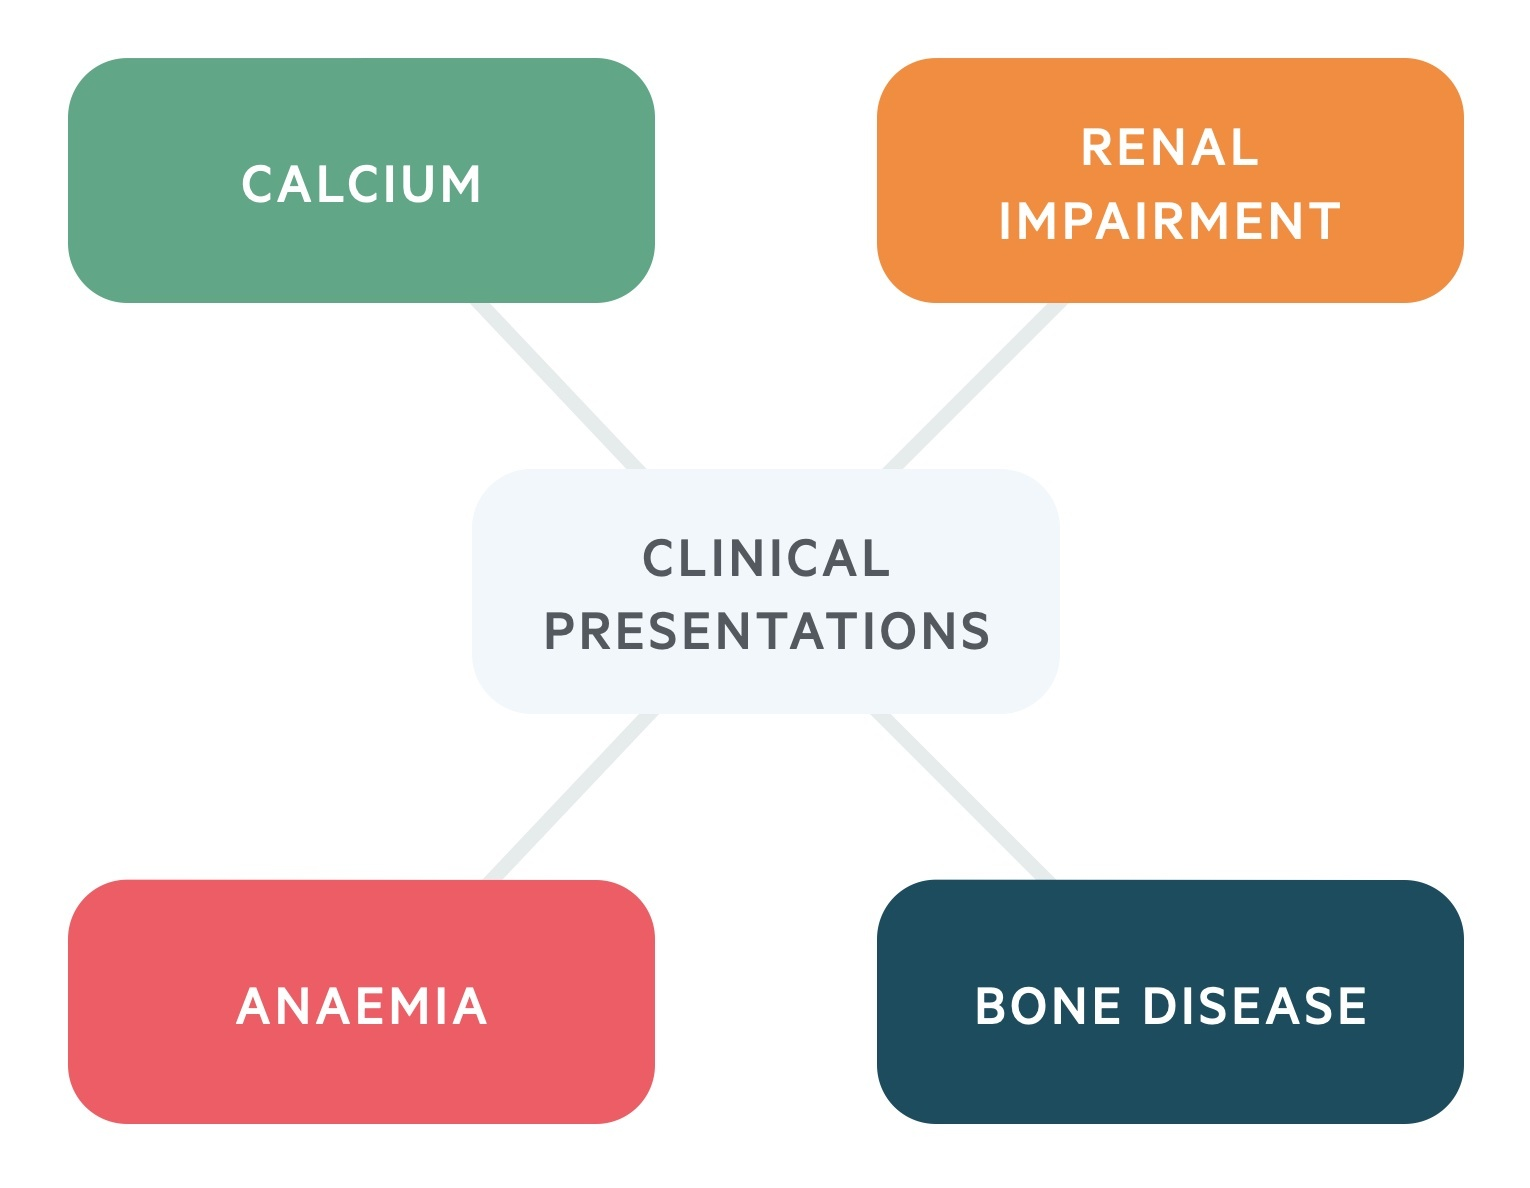 Clinical presentations of multiple myeloma